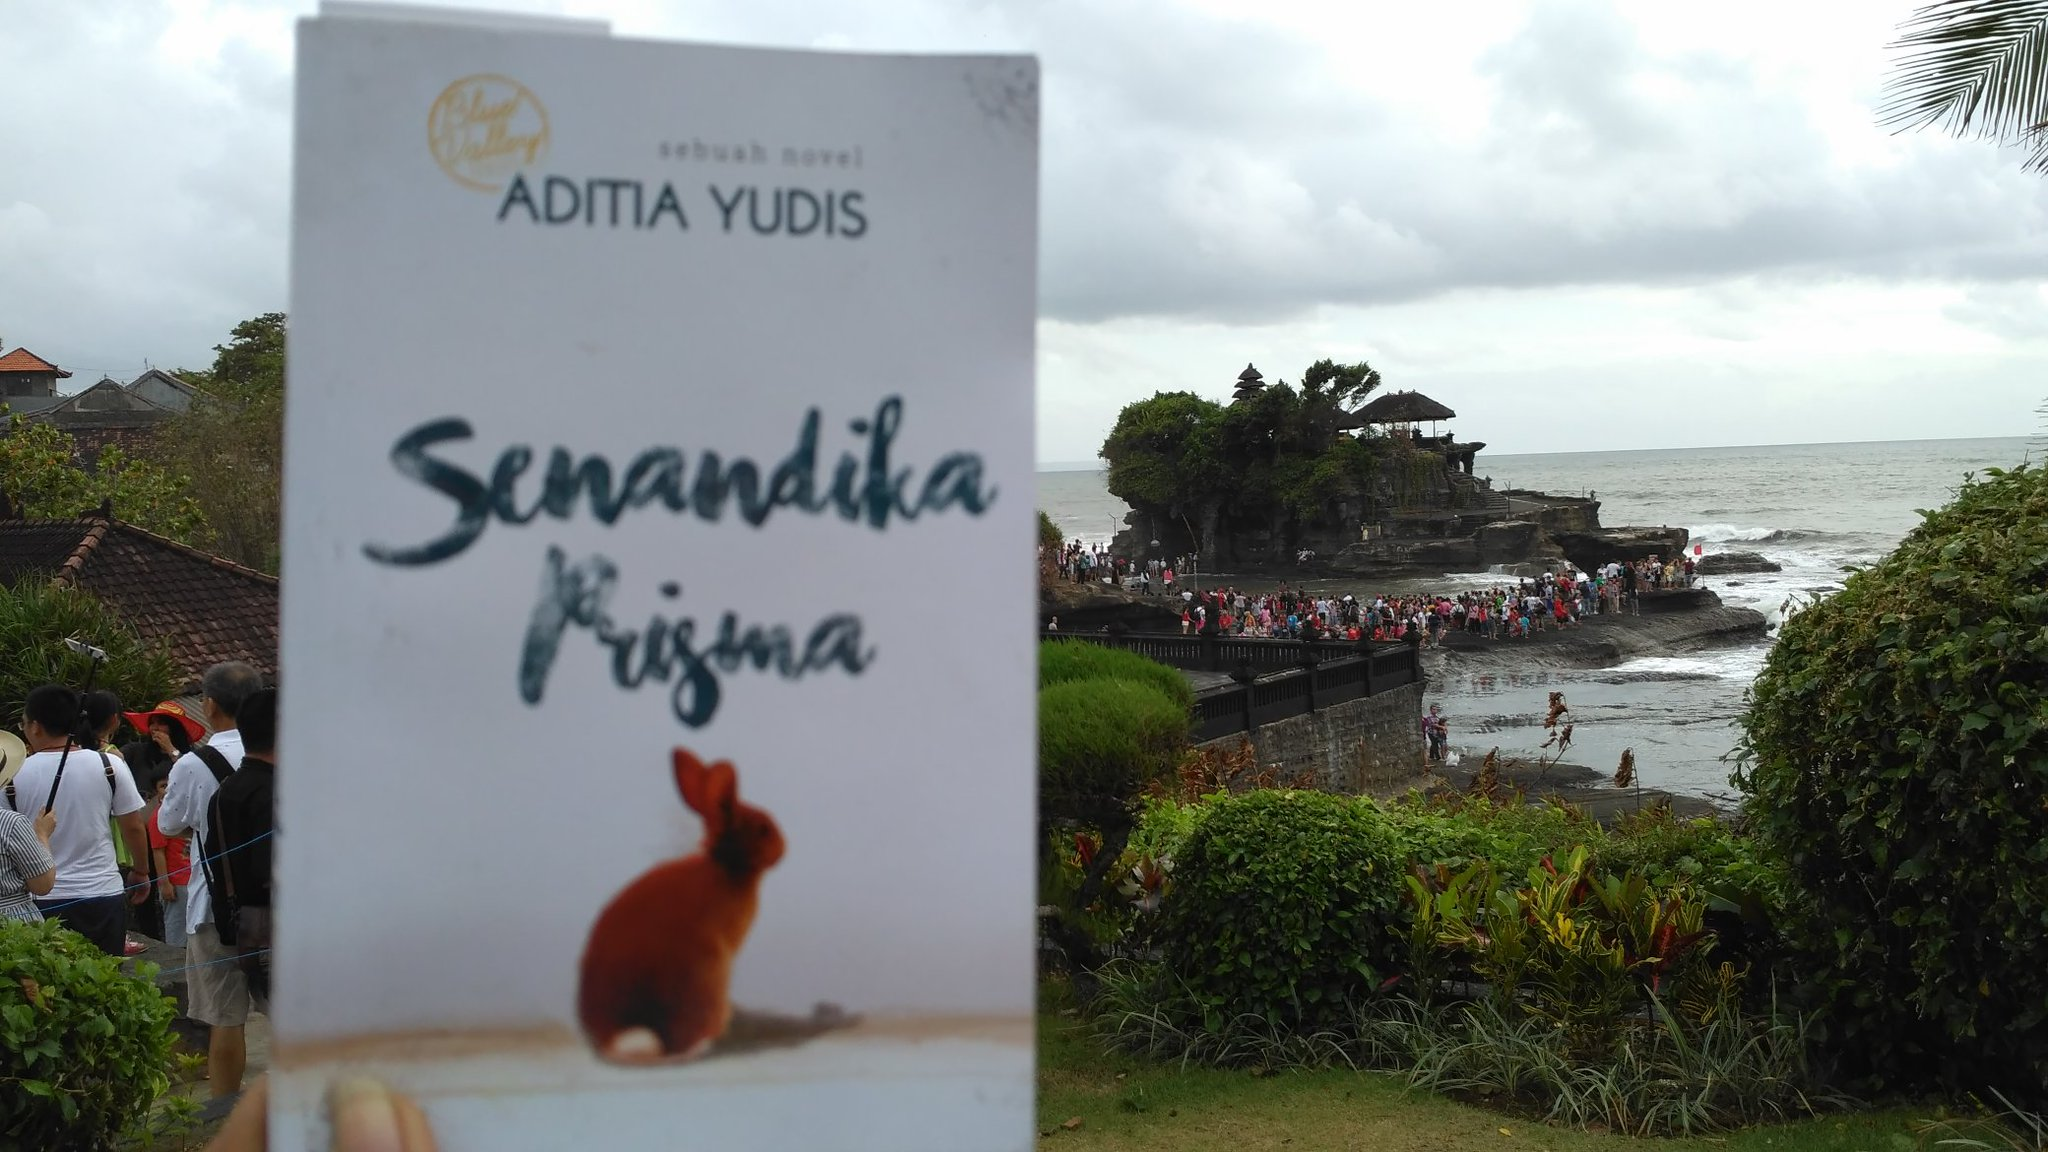 Review Novel Senandika Prisma